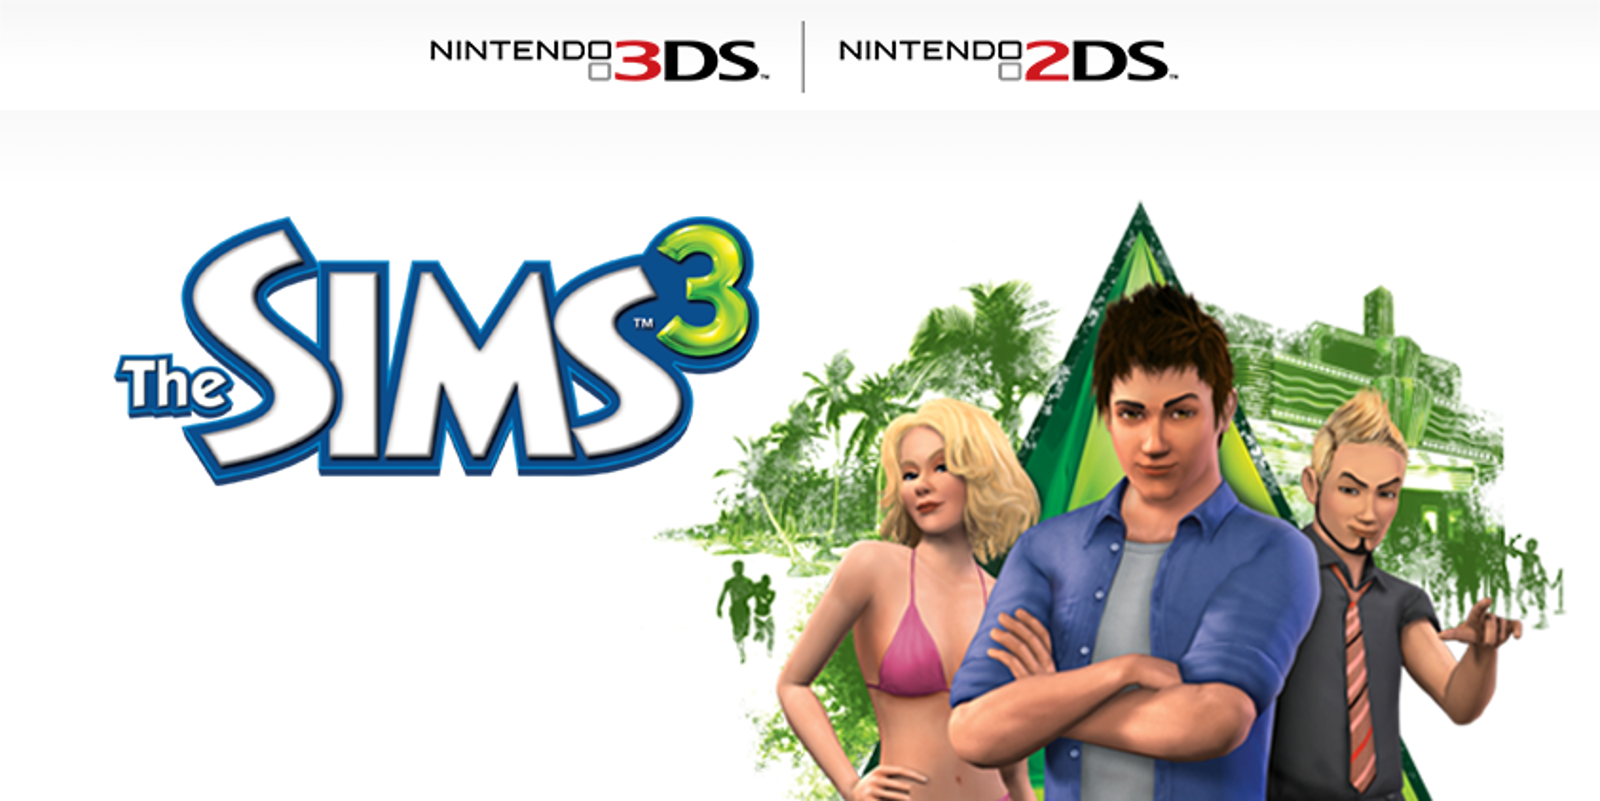 Dating sims for nintendo 3ds